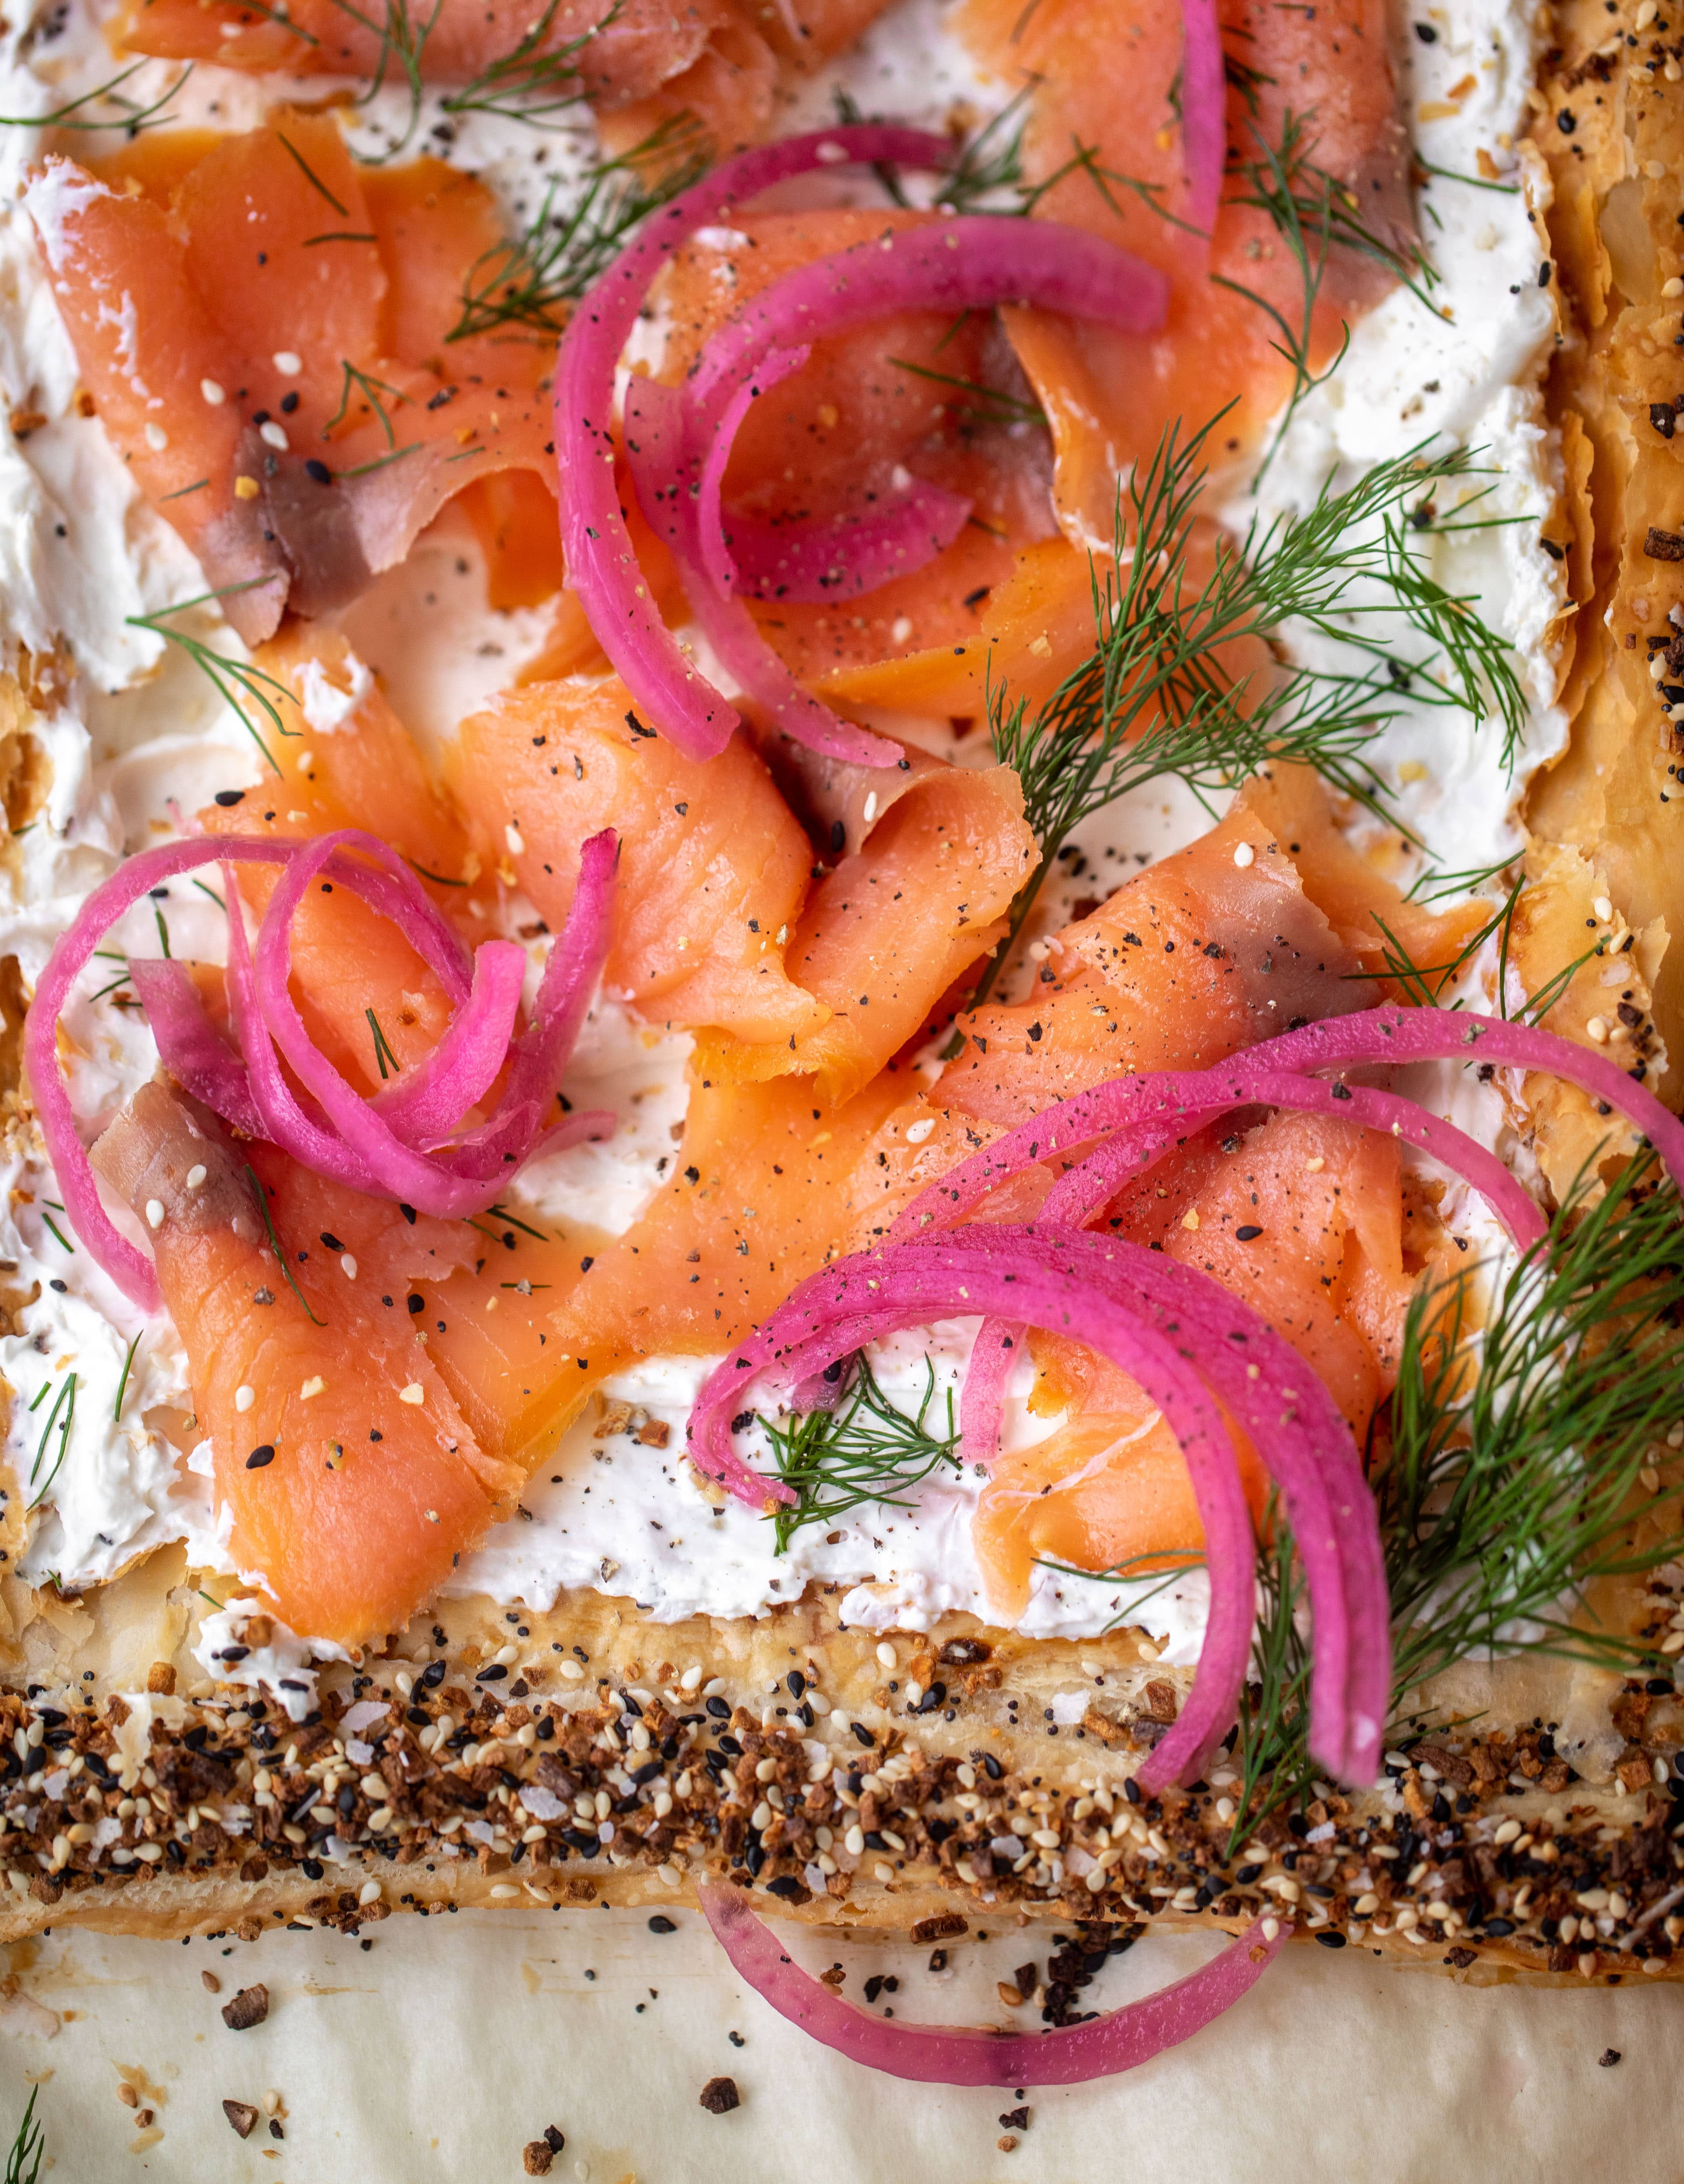 This everything smoked salmon tart is perfect for brunch! Puff pastry sprinkled with everything seasoning, slathered in cream cheese and topped with salmon.